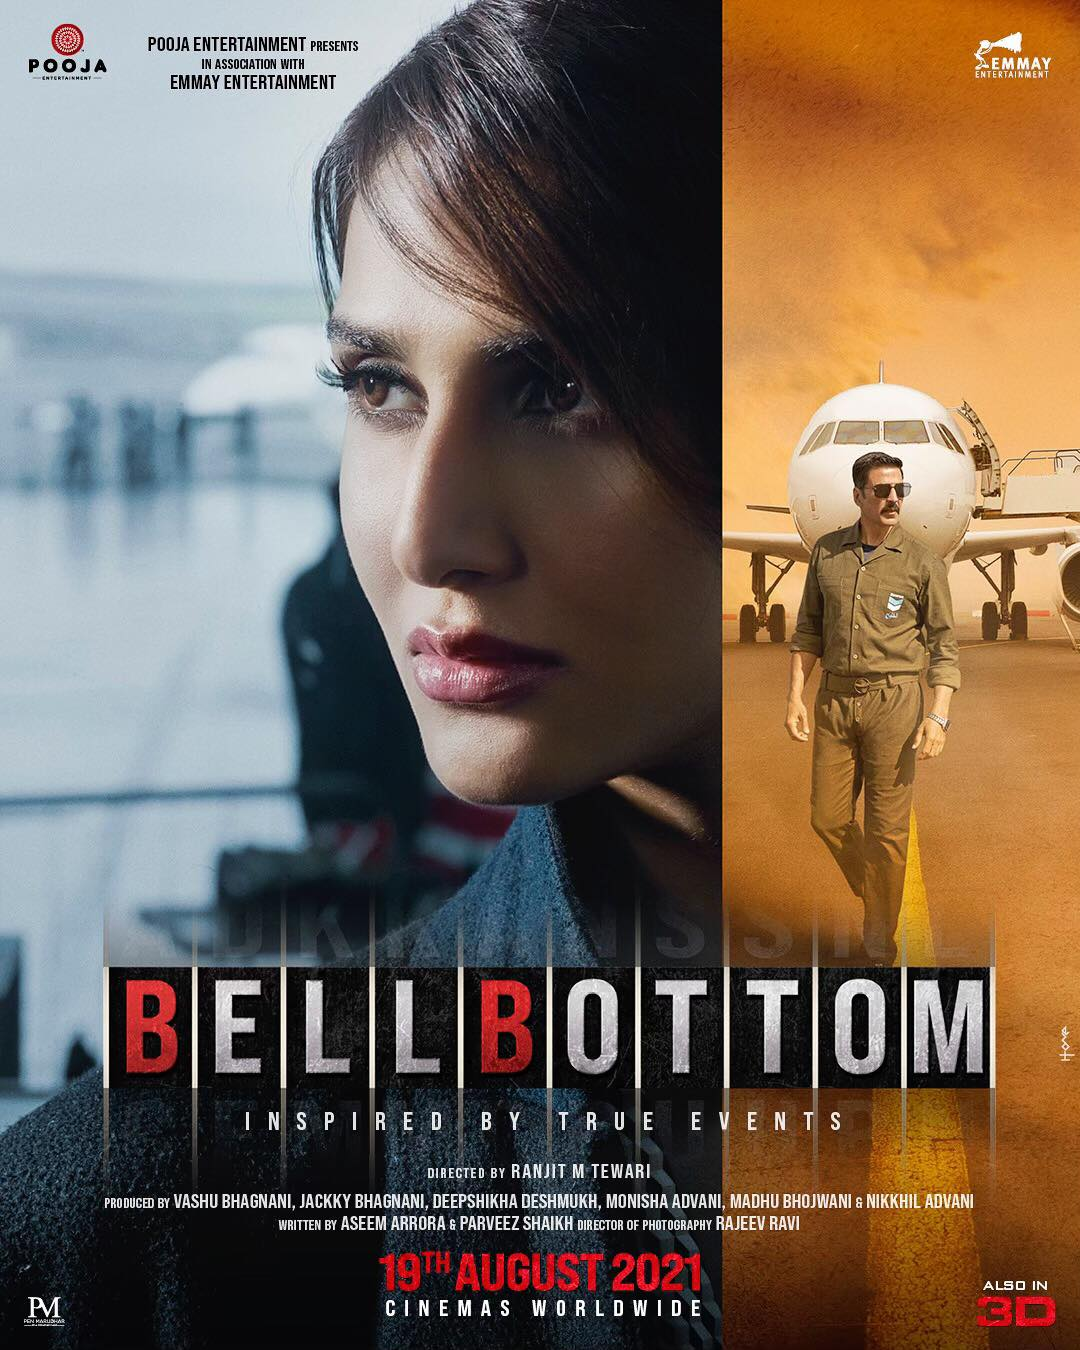 movie review bellbottom full movie download leaked by tamilrockers